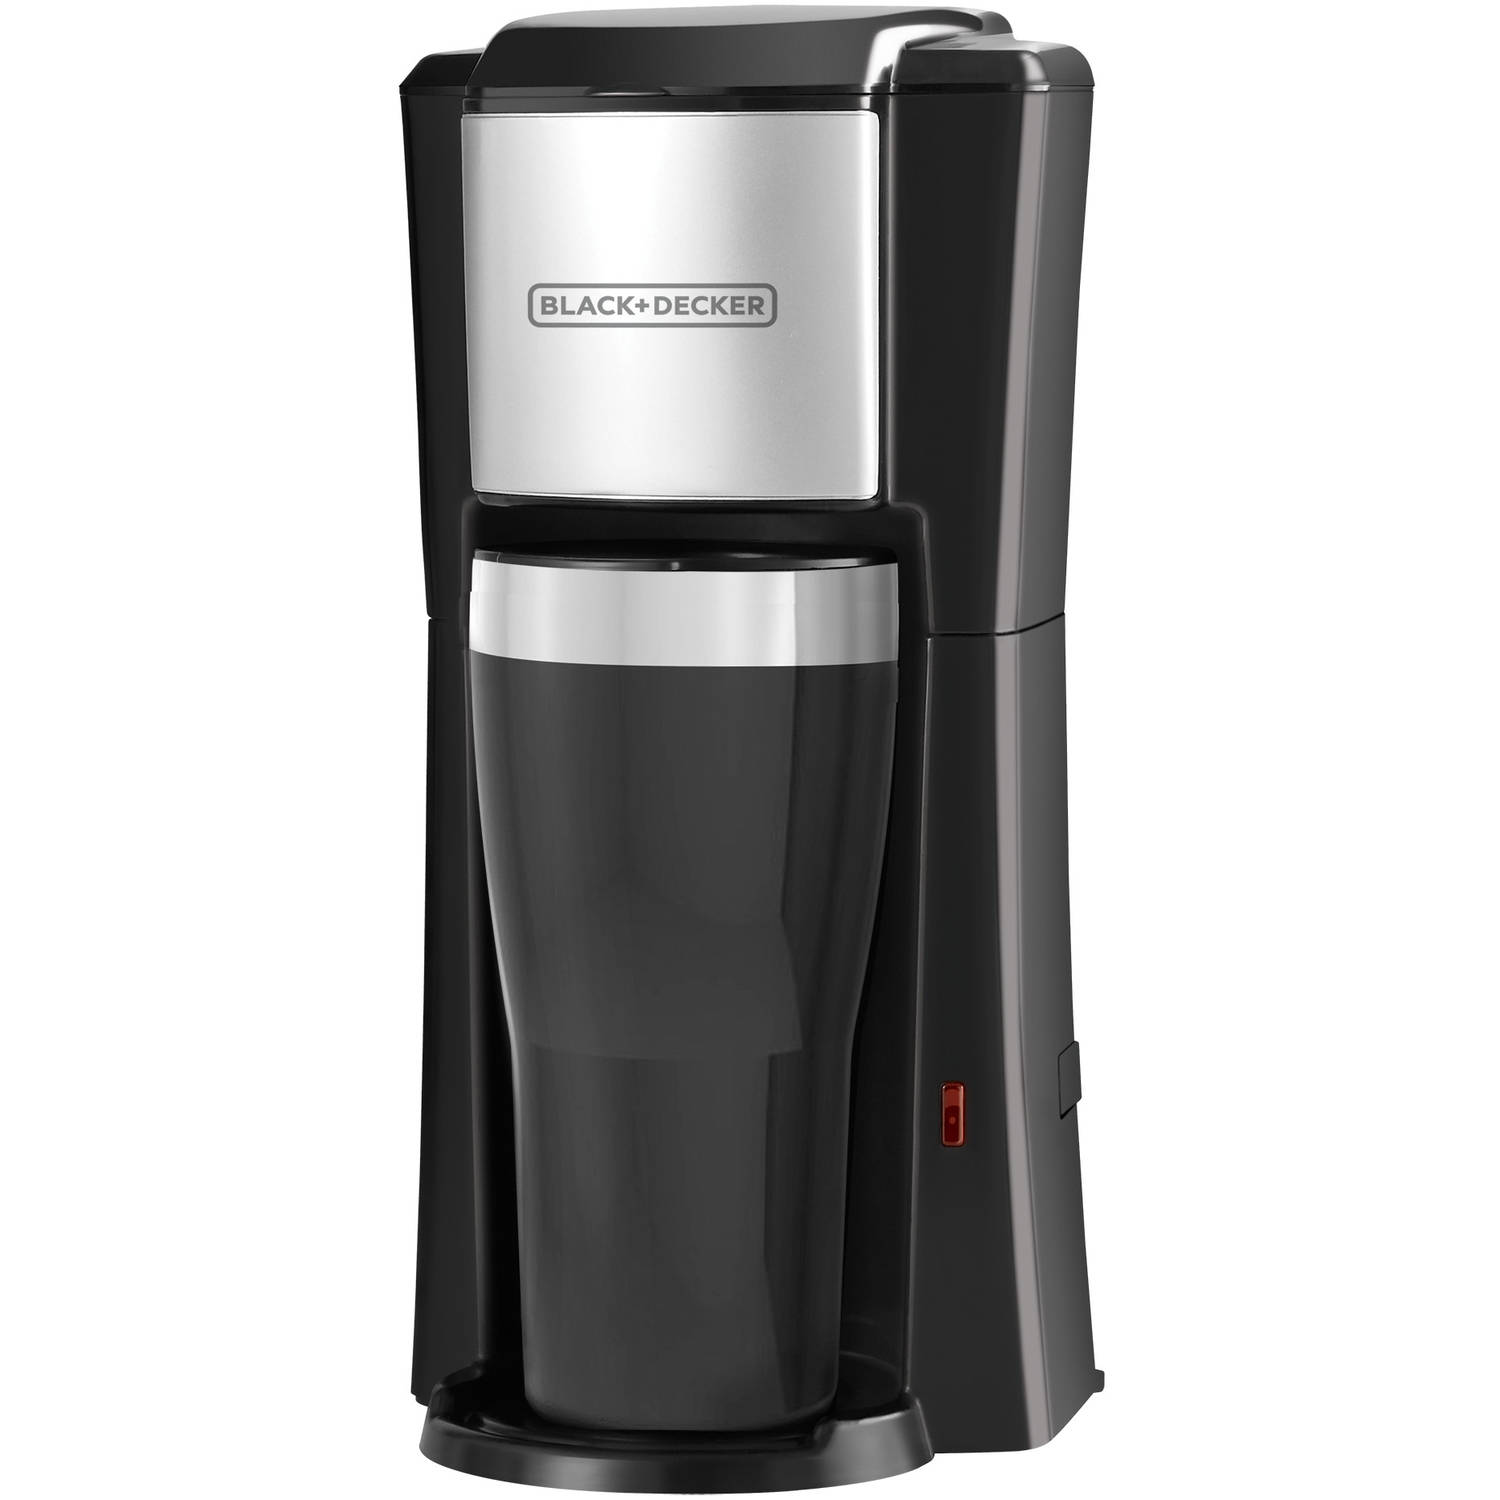 Black And Decker Gt300 Coffee Maker : Black & Decker 8-Cup Thermal Programmable Coffee Maker, Stainless Steel and Black - Walmart.com